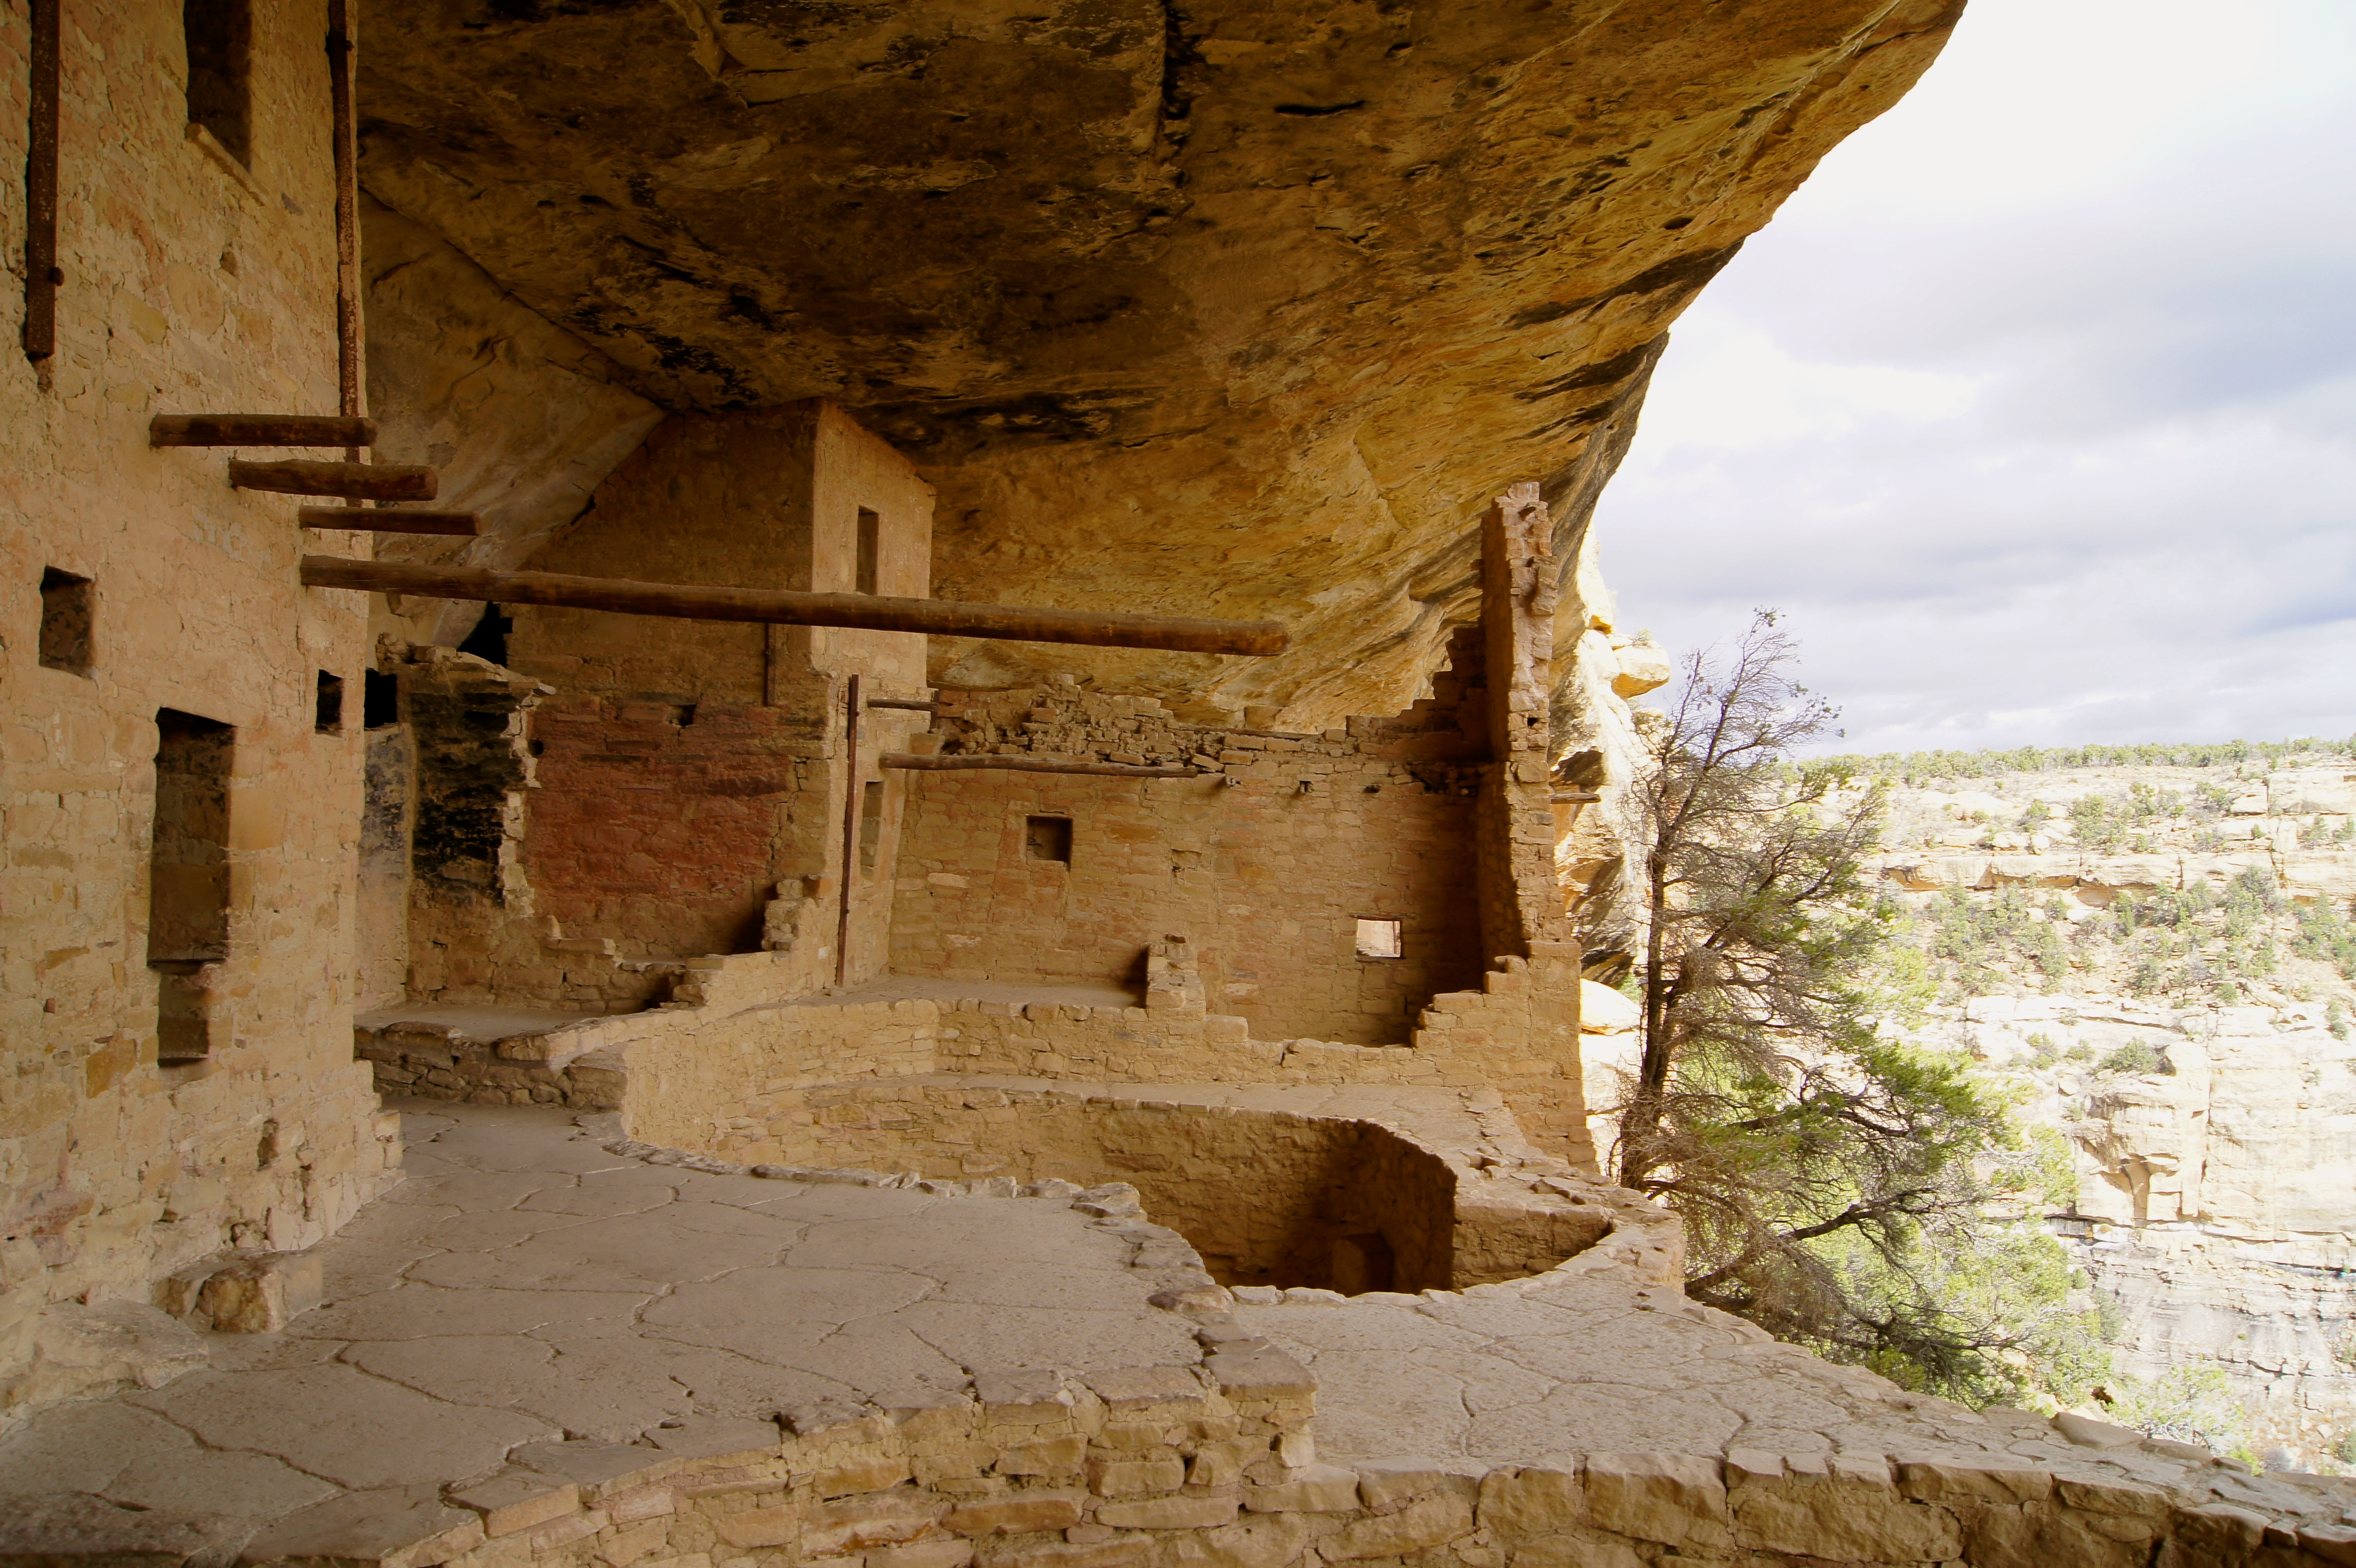 mesa verde national park asian personals Visit our keyboard shortcuts docs for details duration: 6 minutes, 25 seconds mesa verde national park contains over 5000 archeological sites across 40+ miles of roads.